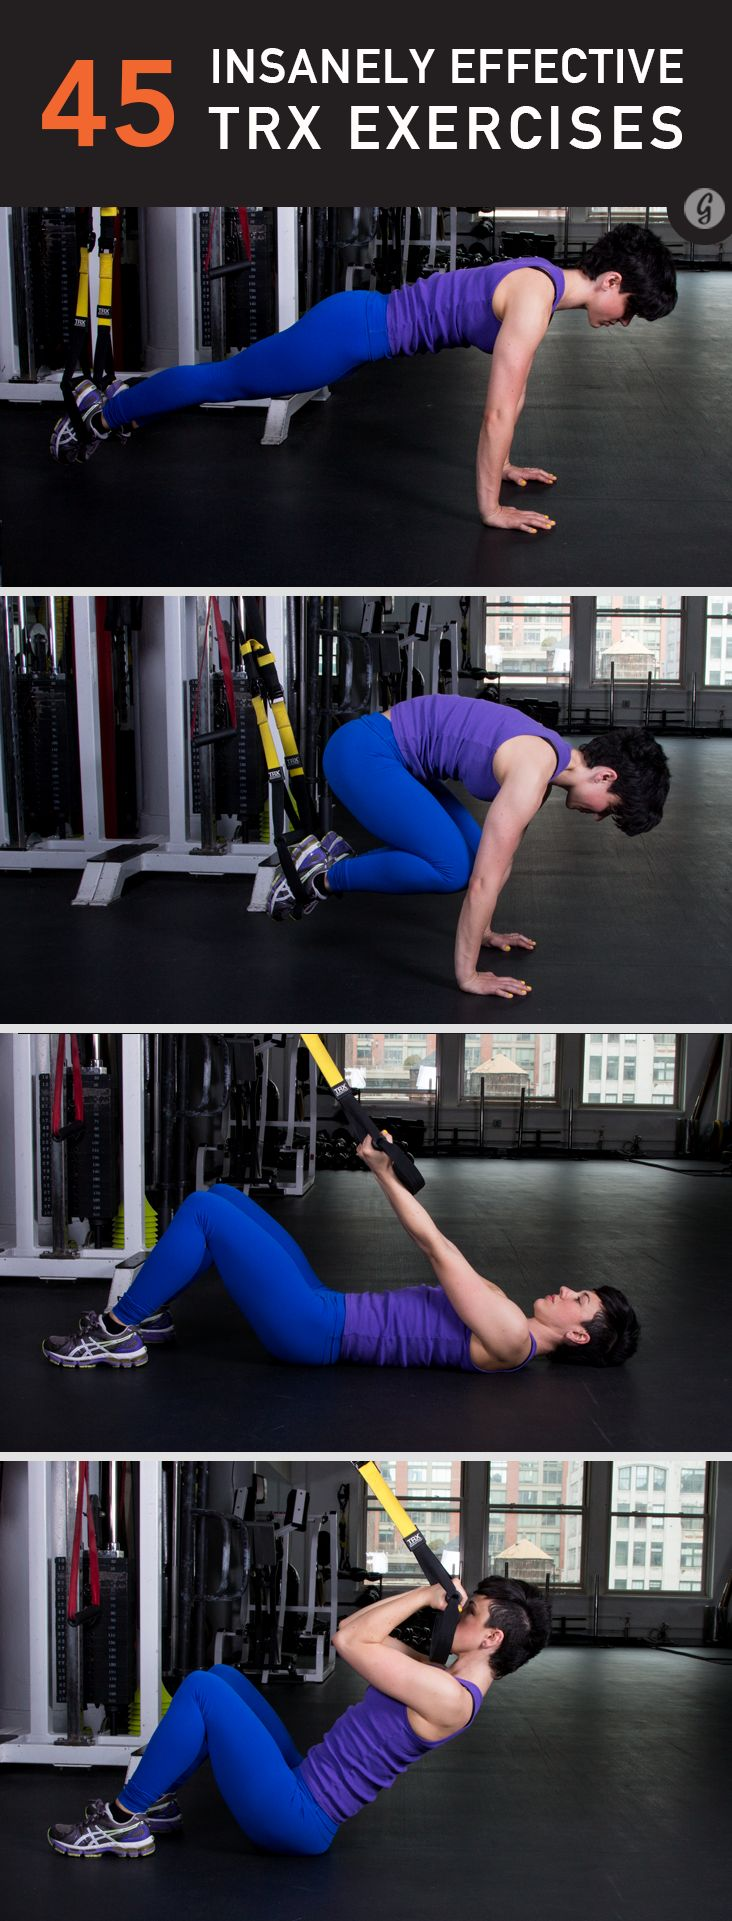 Who needs a fancy TRX thingie if you've got rings?